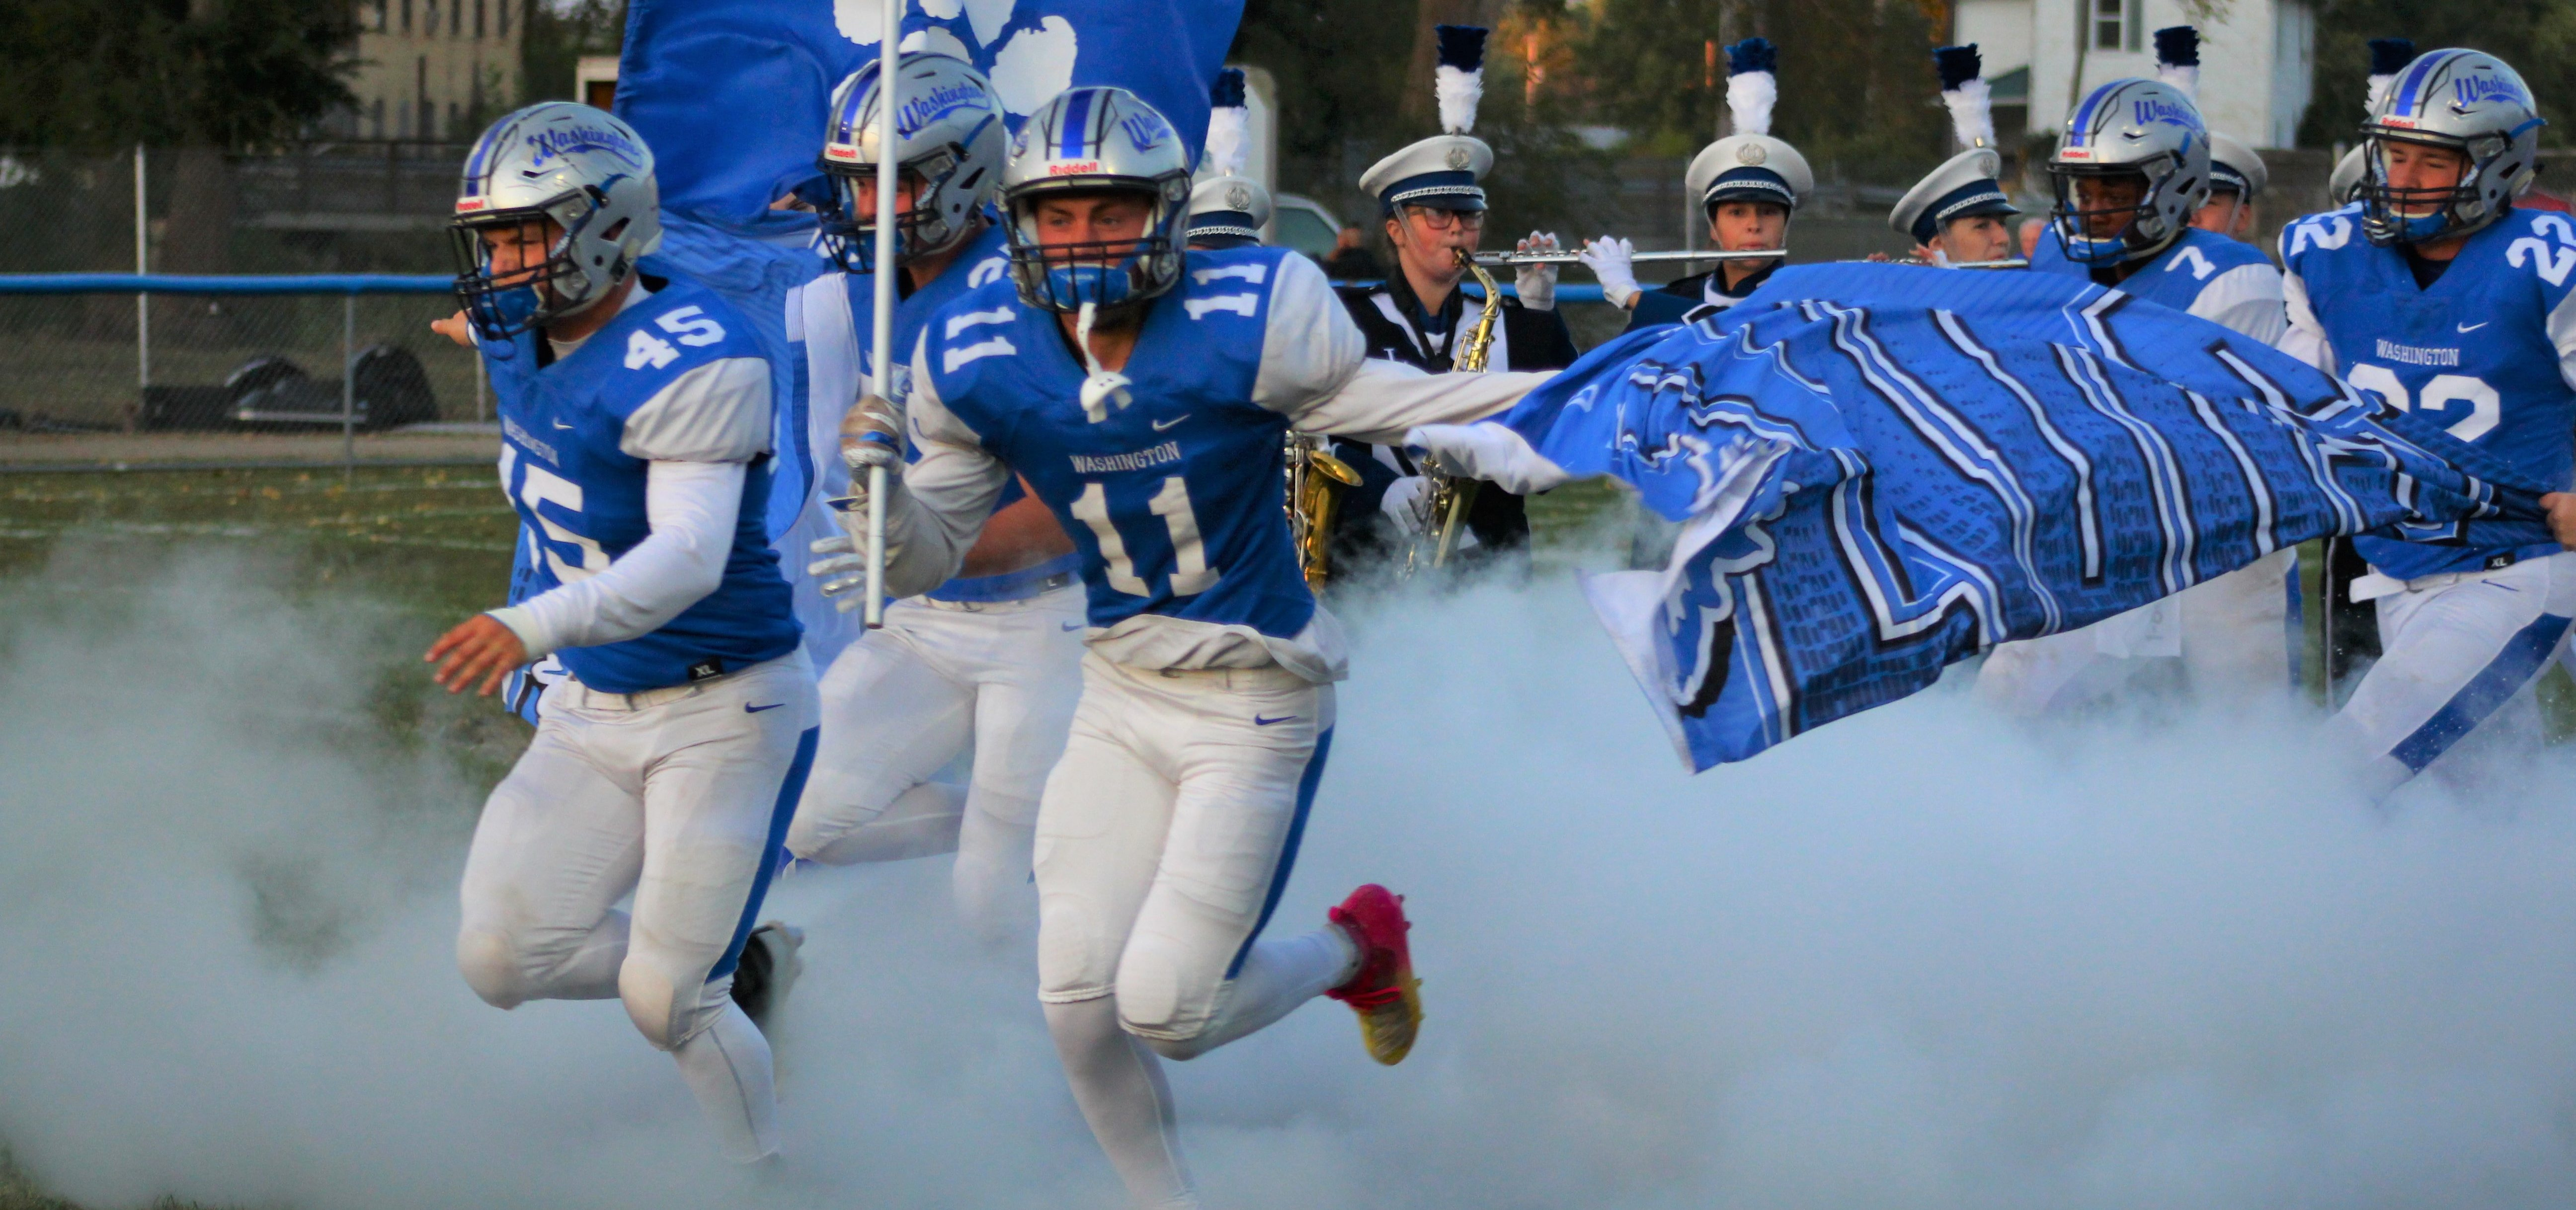 The Chillicothe Cavaliers run onto the field as get set to play the Washington Court House on Oct. 5, 2019.